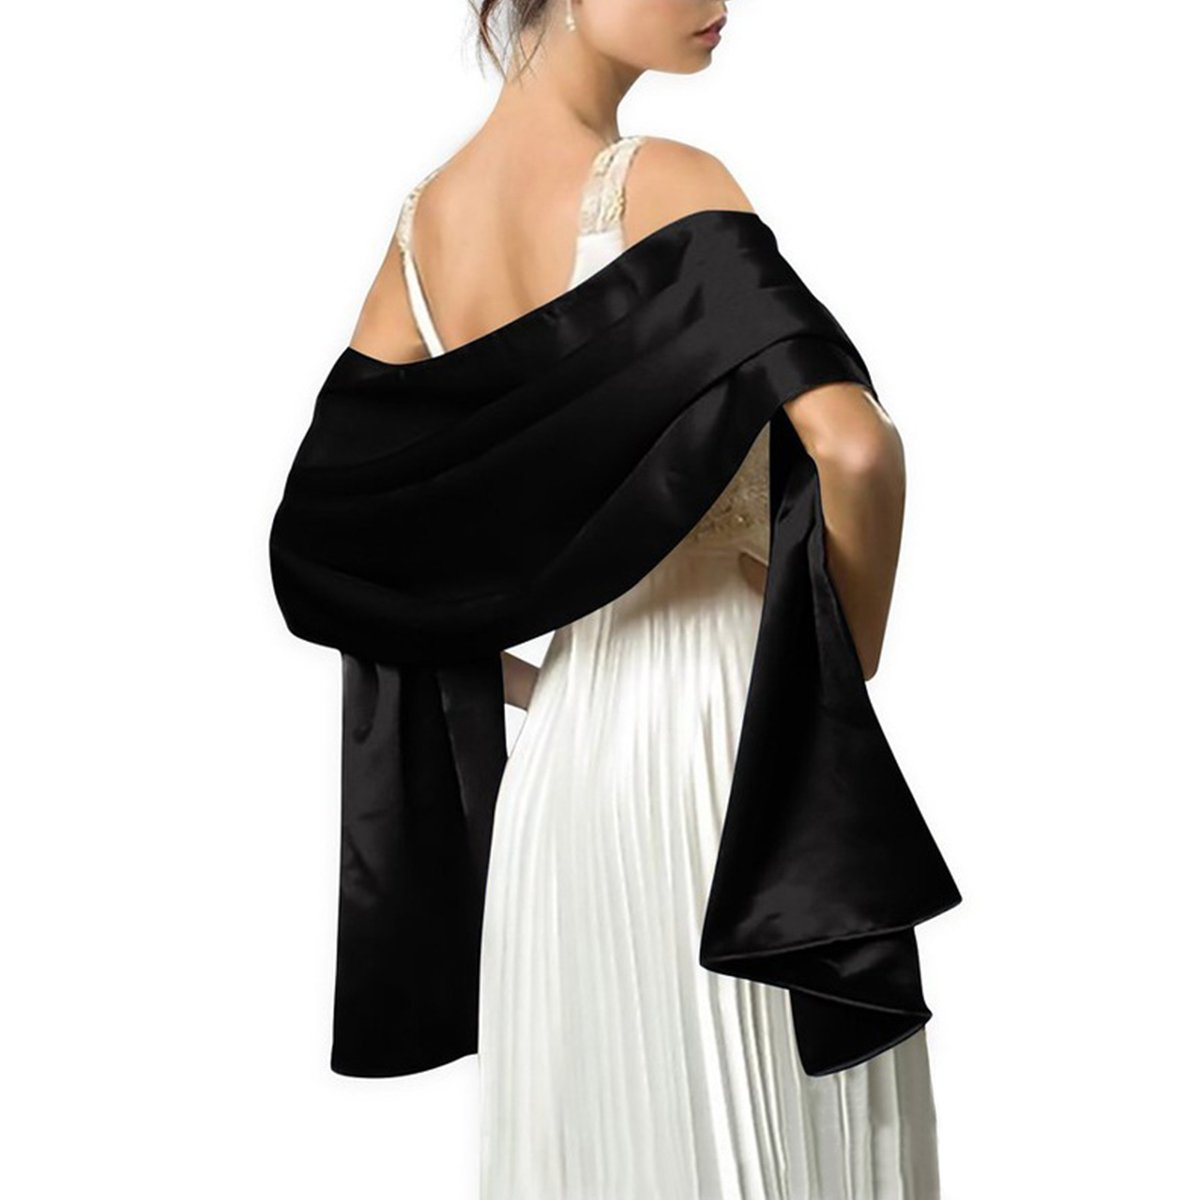 Satin Shawls and Wraps for Evening Dresses Bridal Party Special Occasion by Lansitina